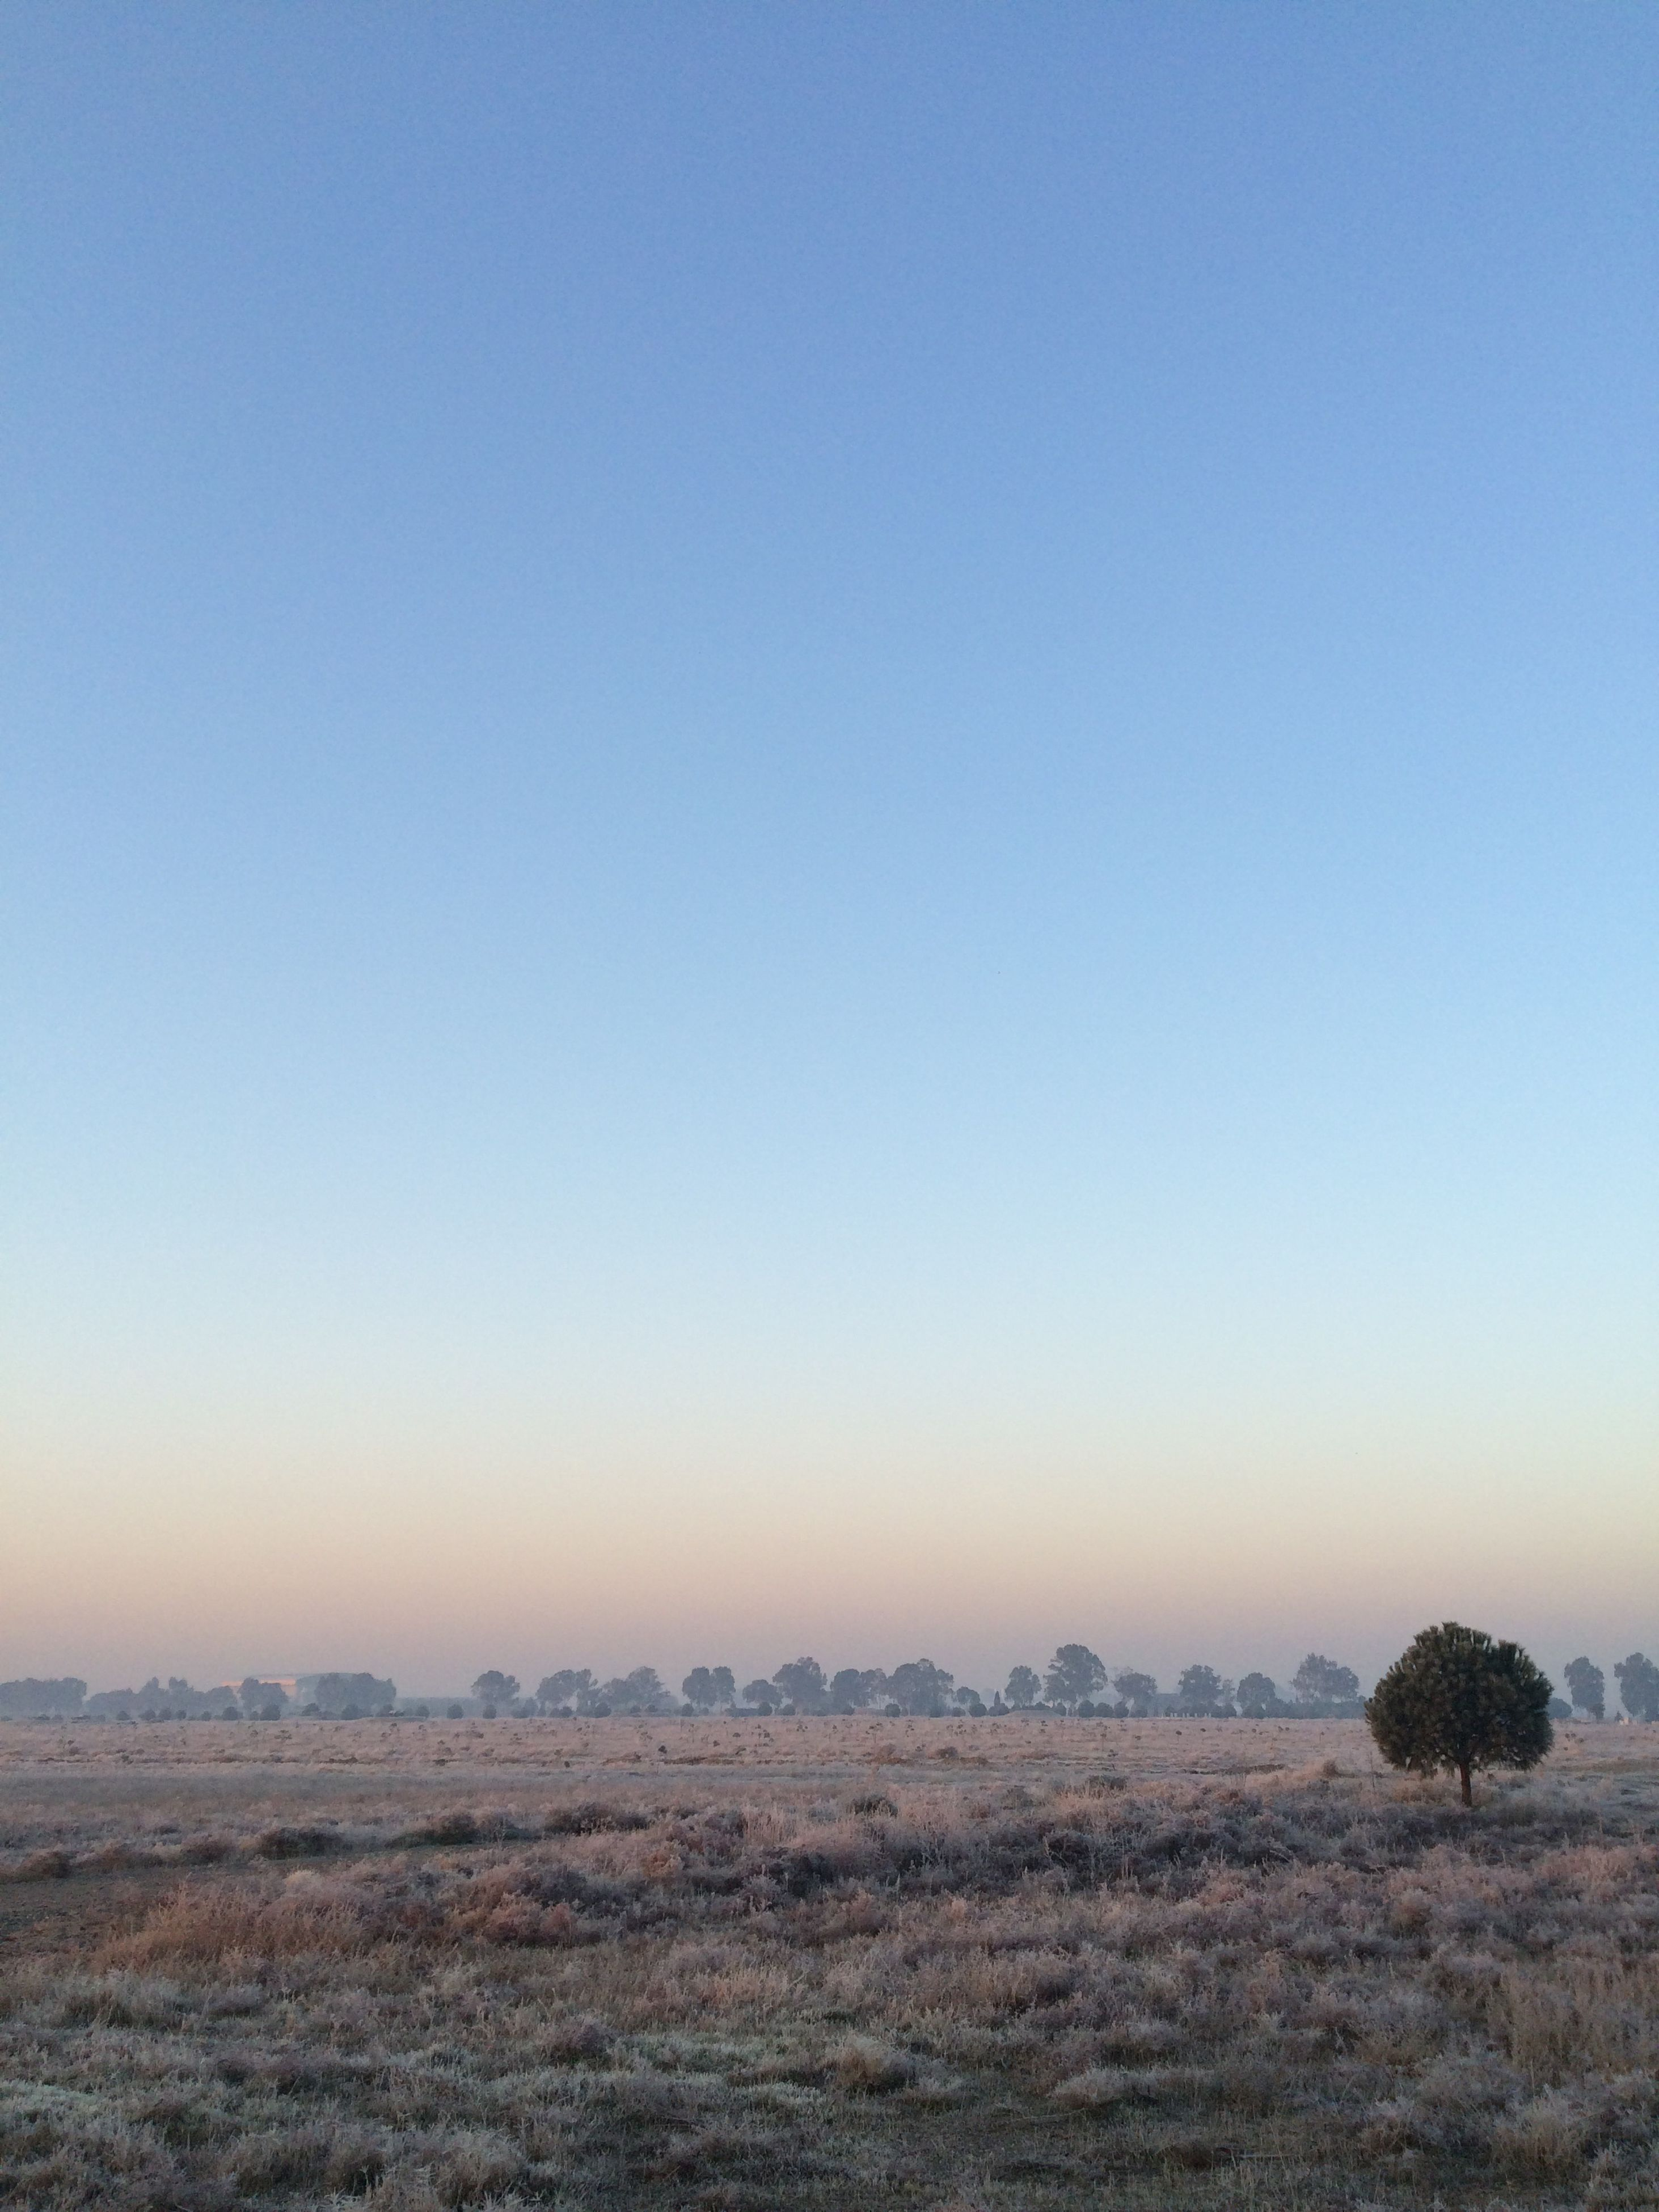 clear sky, tranquility, nature, tranquil scene, scenics, beauty in nature, no people, landscape, outdoors, sky, day, agriculture